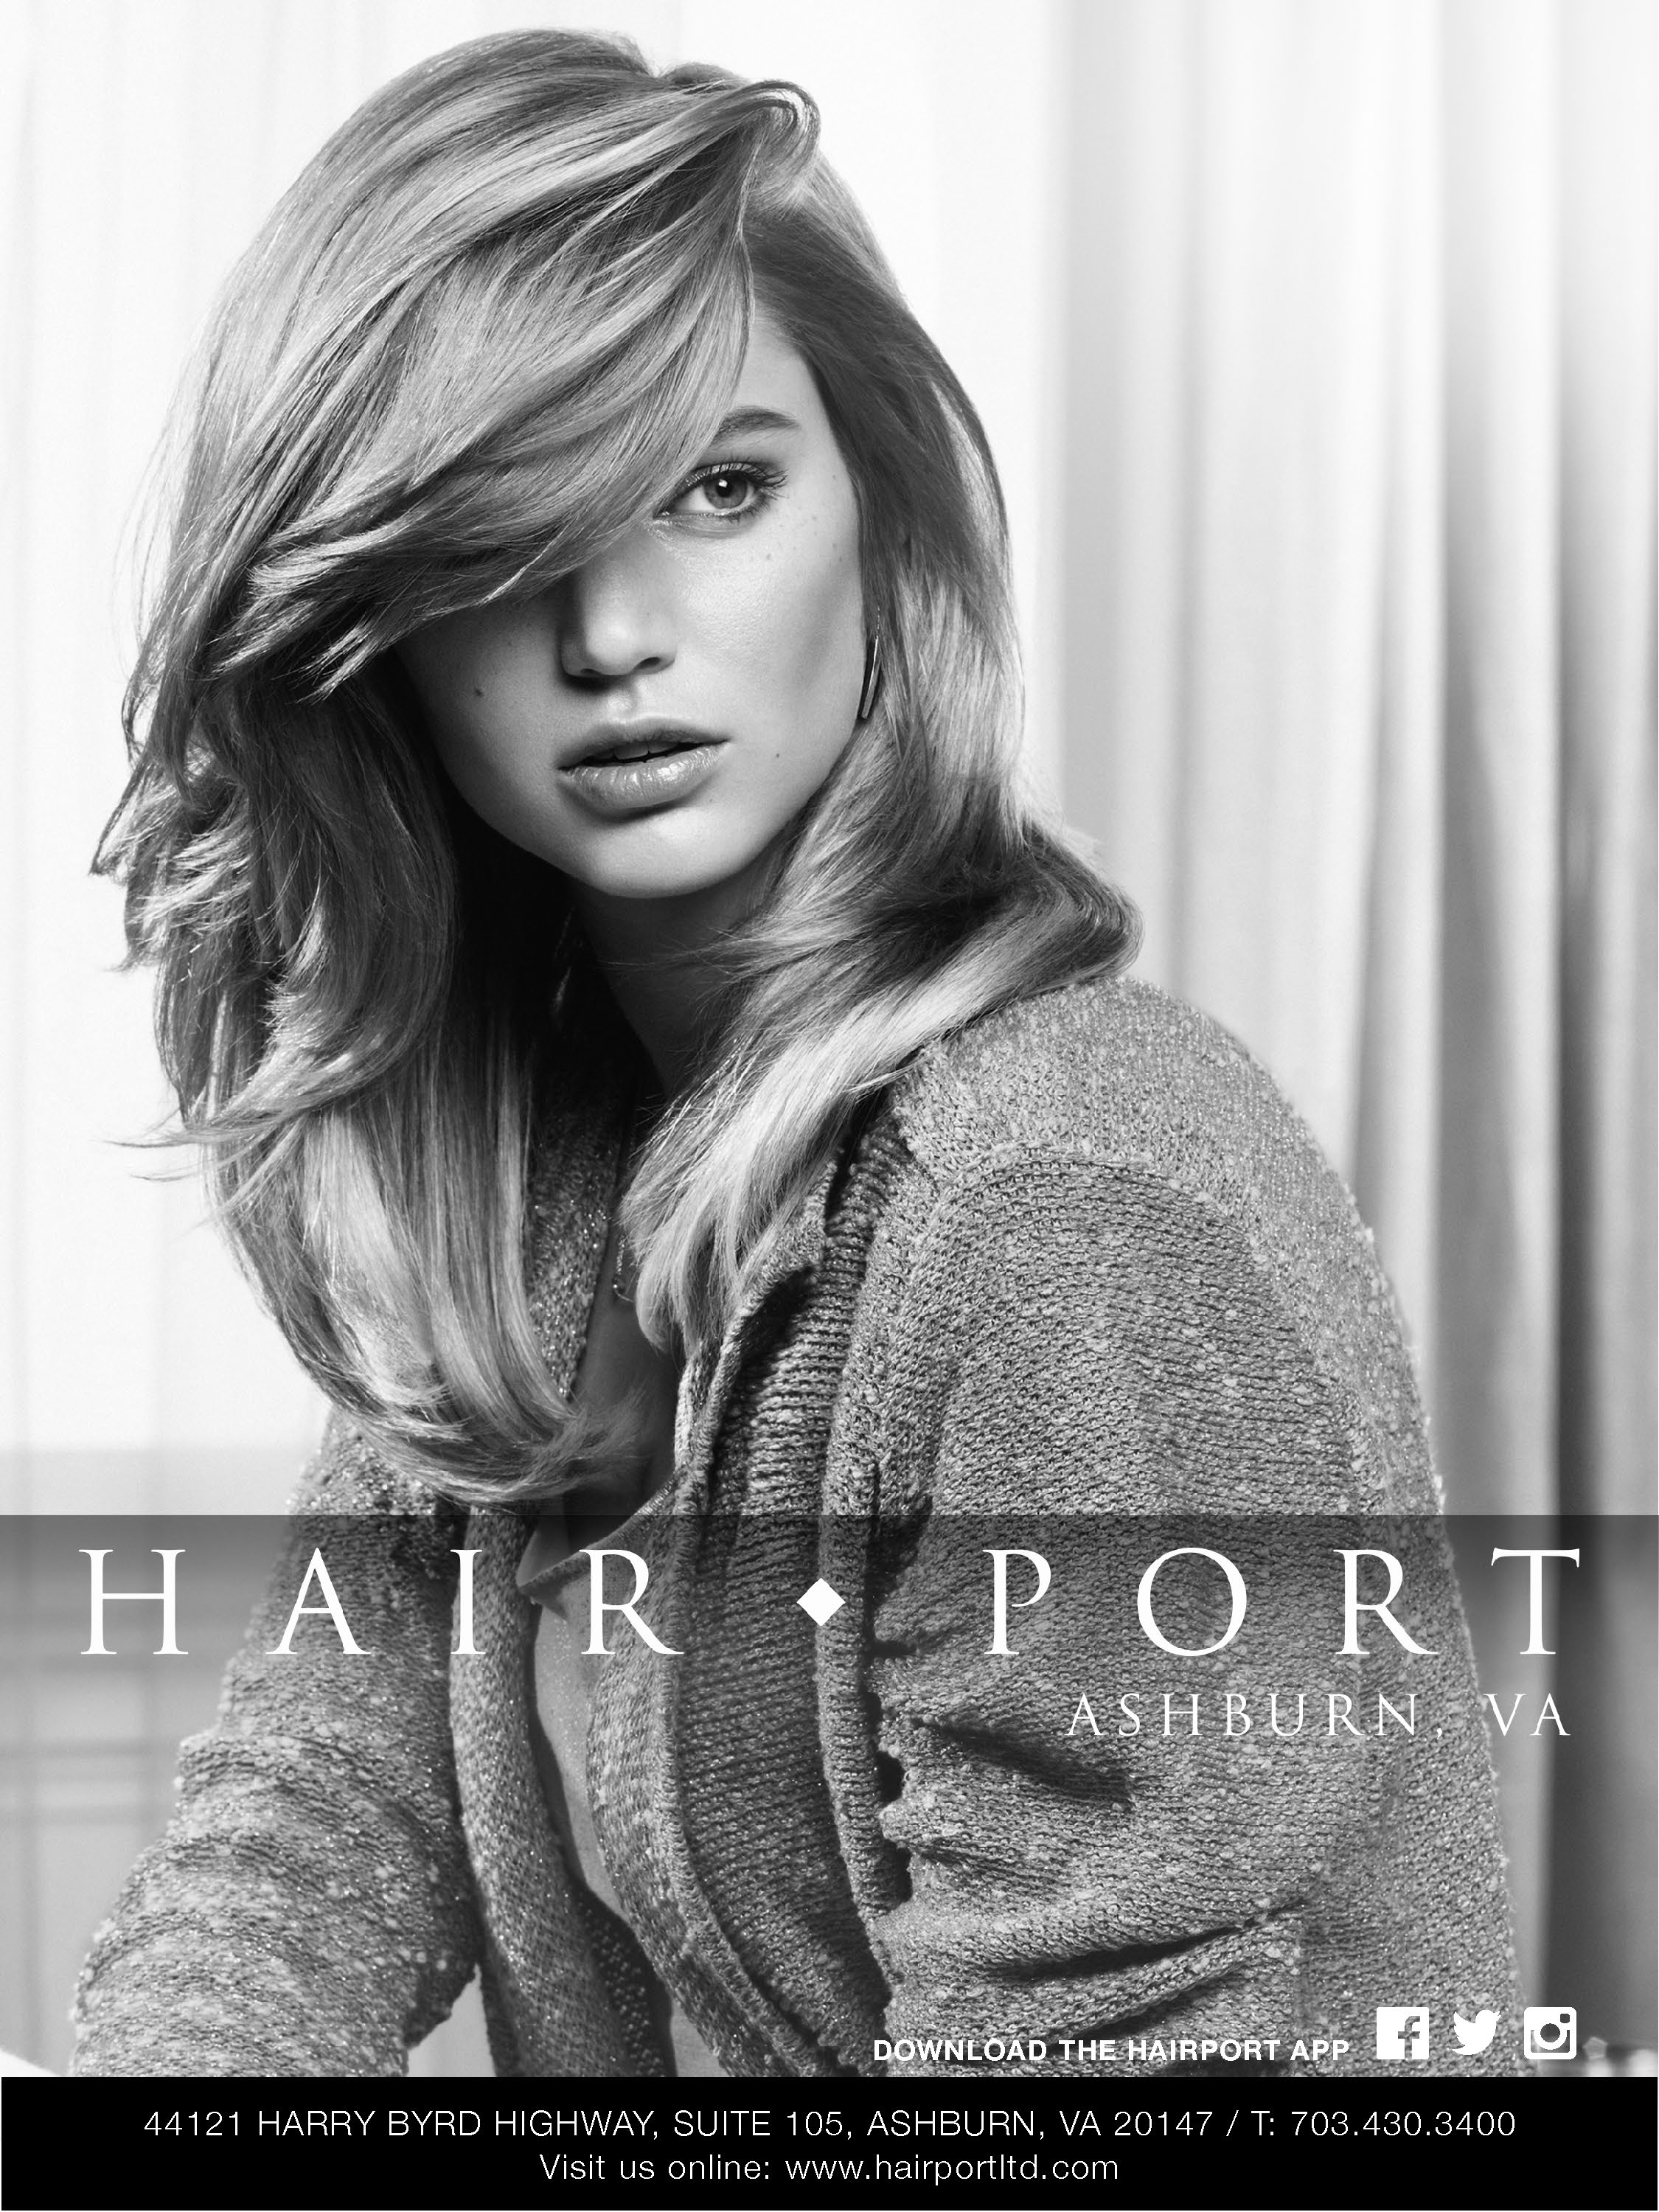 ~4057~ART DRIVE~HAIR PORT~HAIPORT ADS~HP 2015 AD~HP 2015 AD.jpg